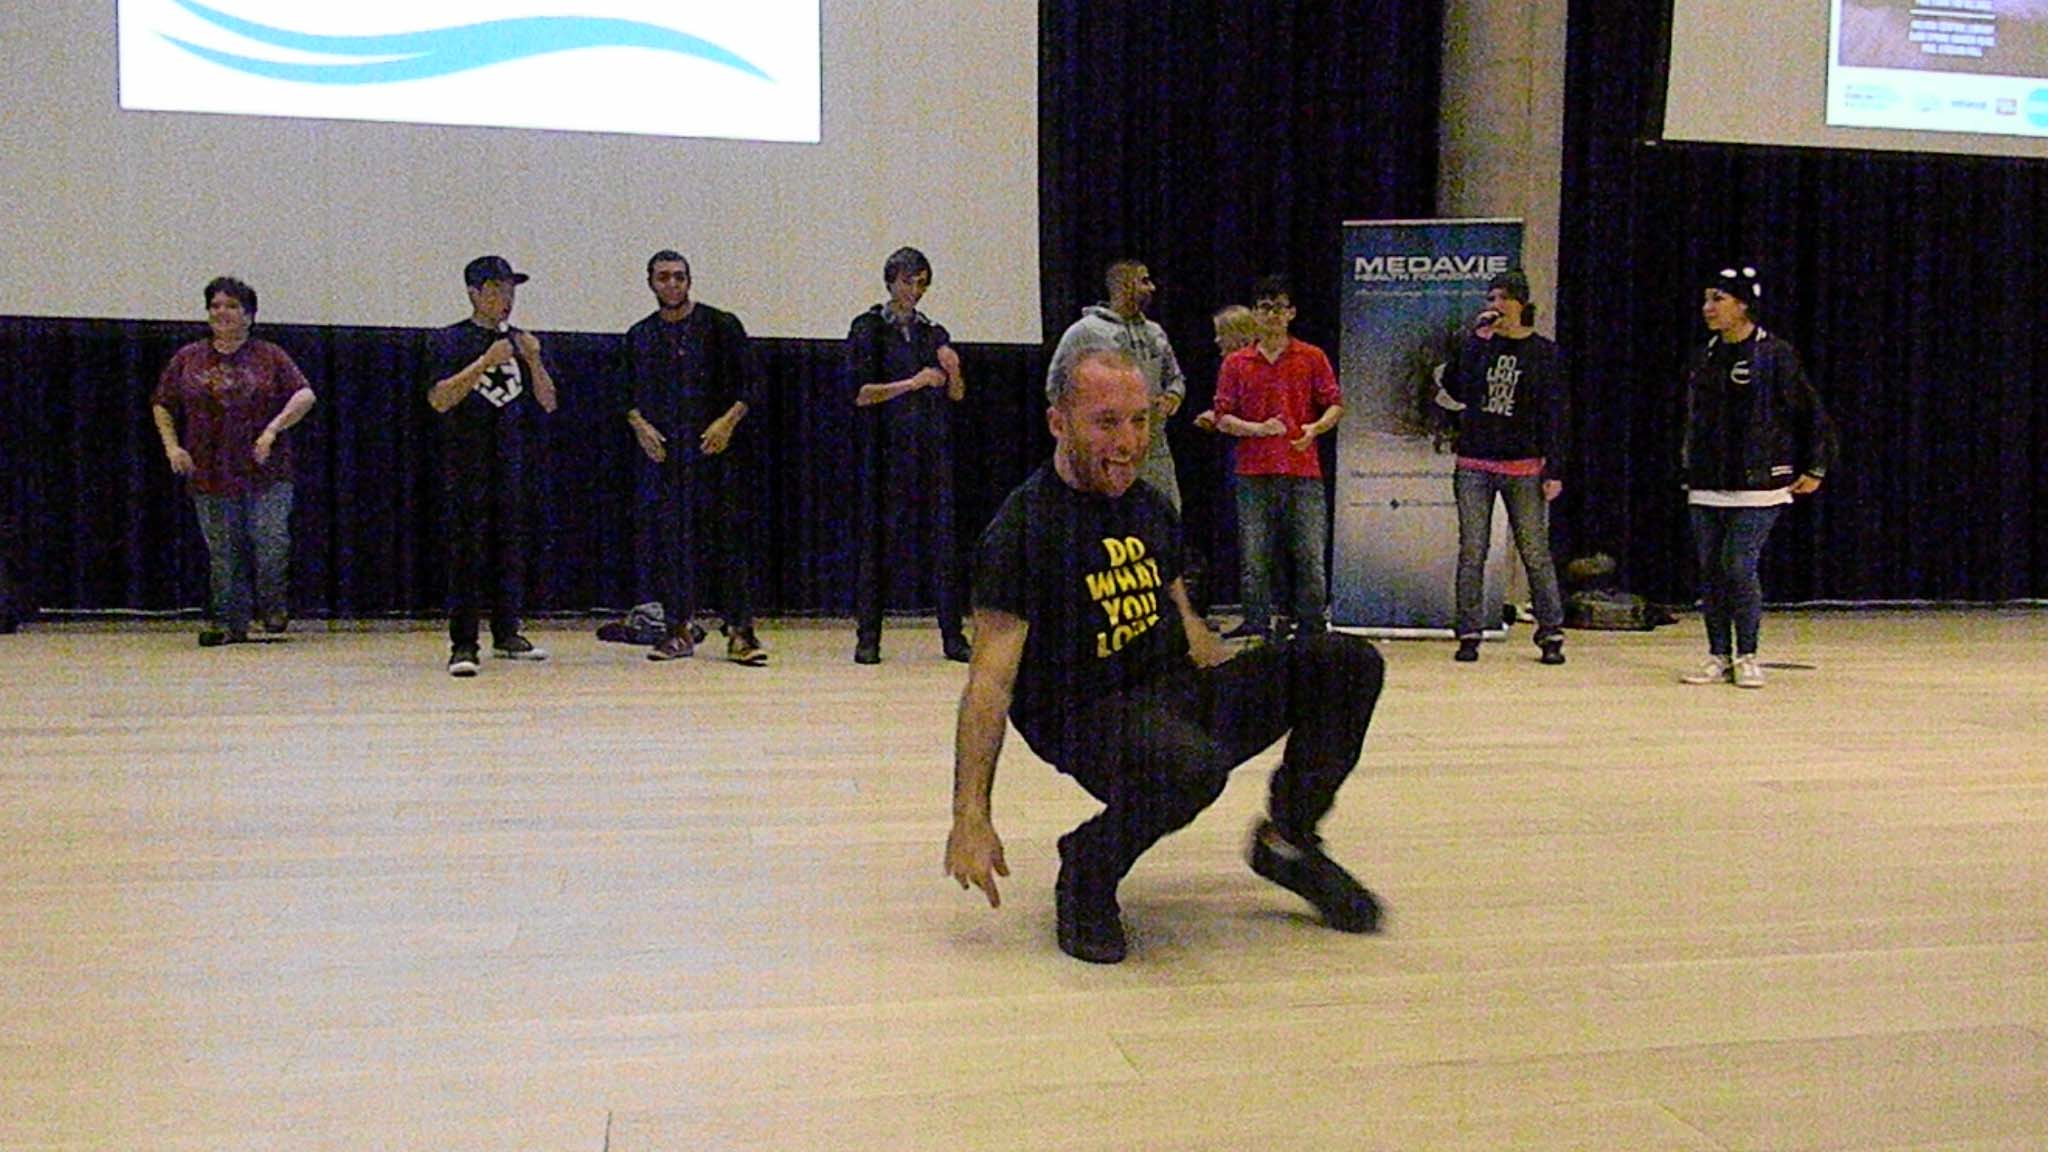 Unity founder Michael Prosserman danced during the event